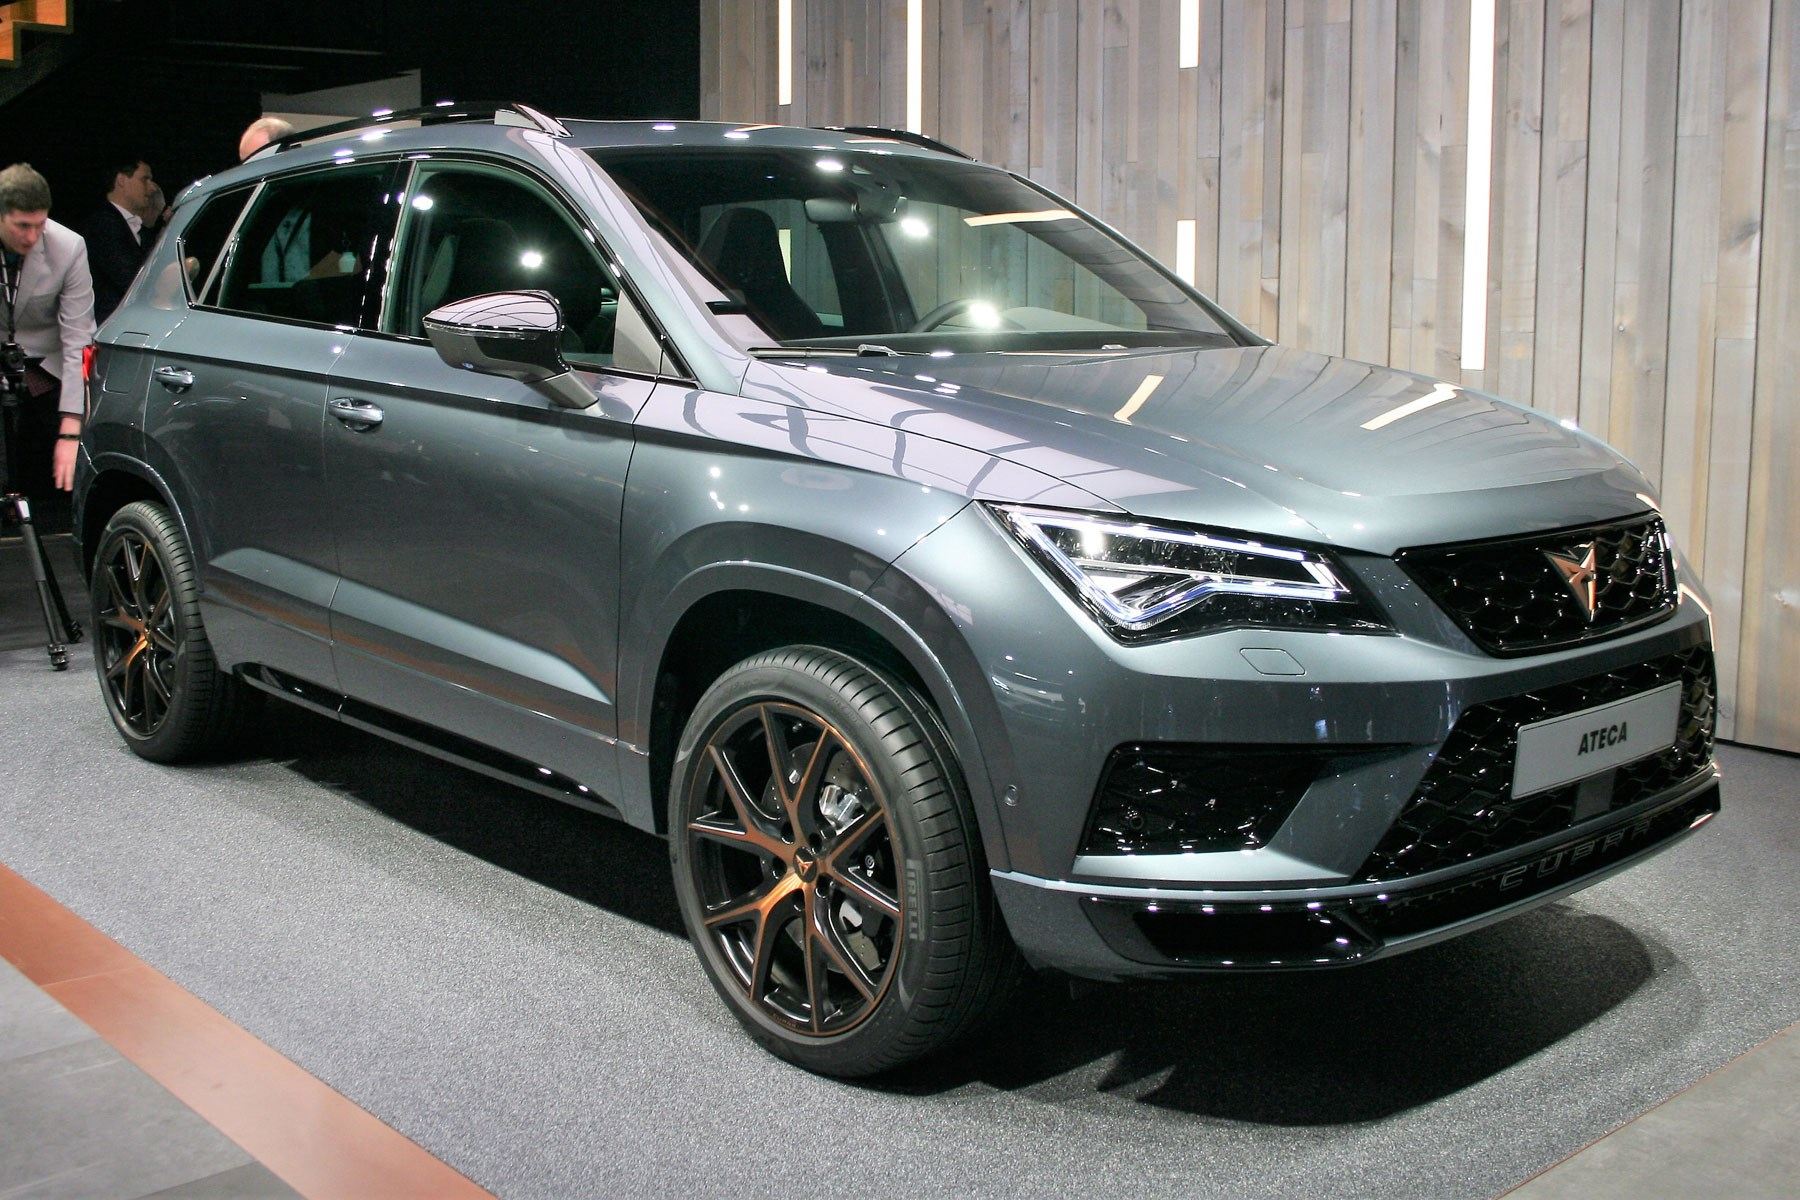 Cupra Ateca Suv News Photos Prices Specs On Sale Date